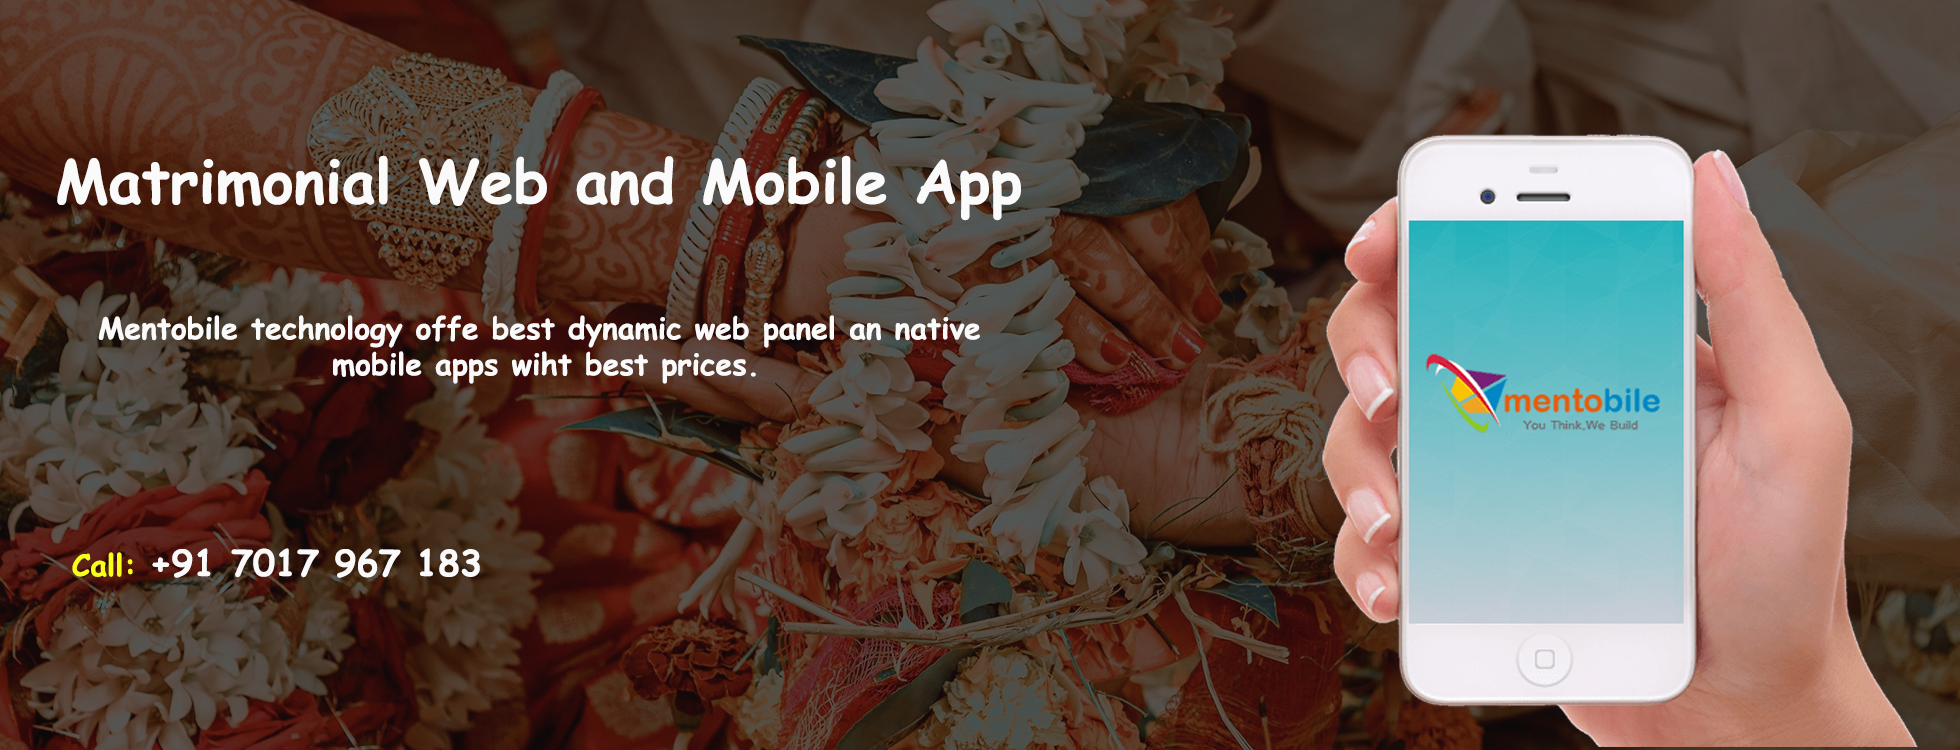 matrimonial web and apps development company